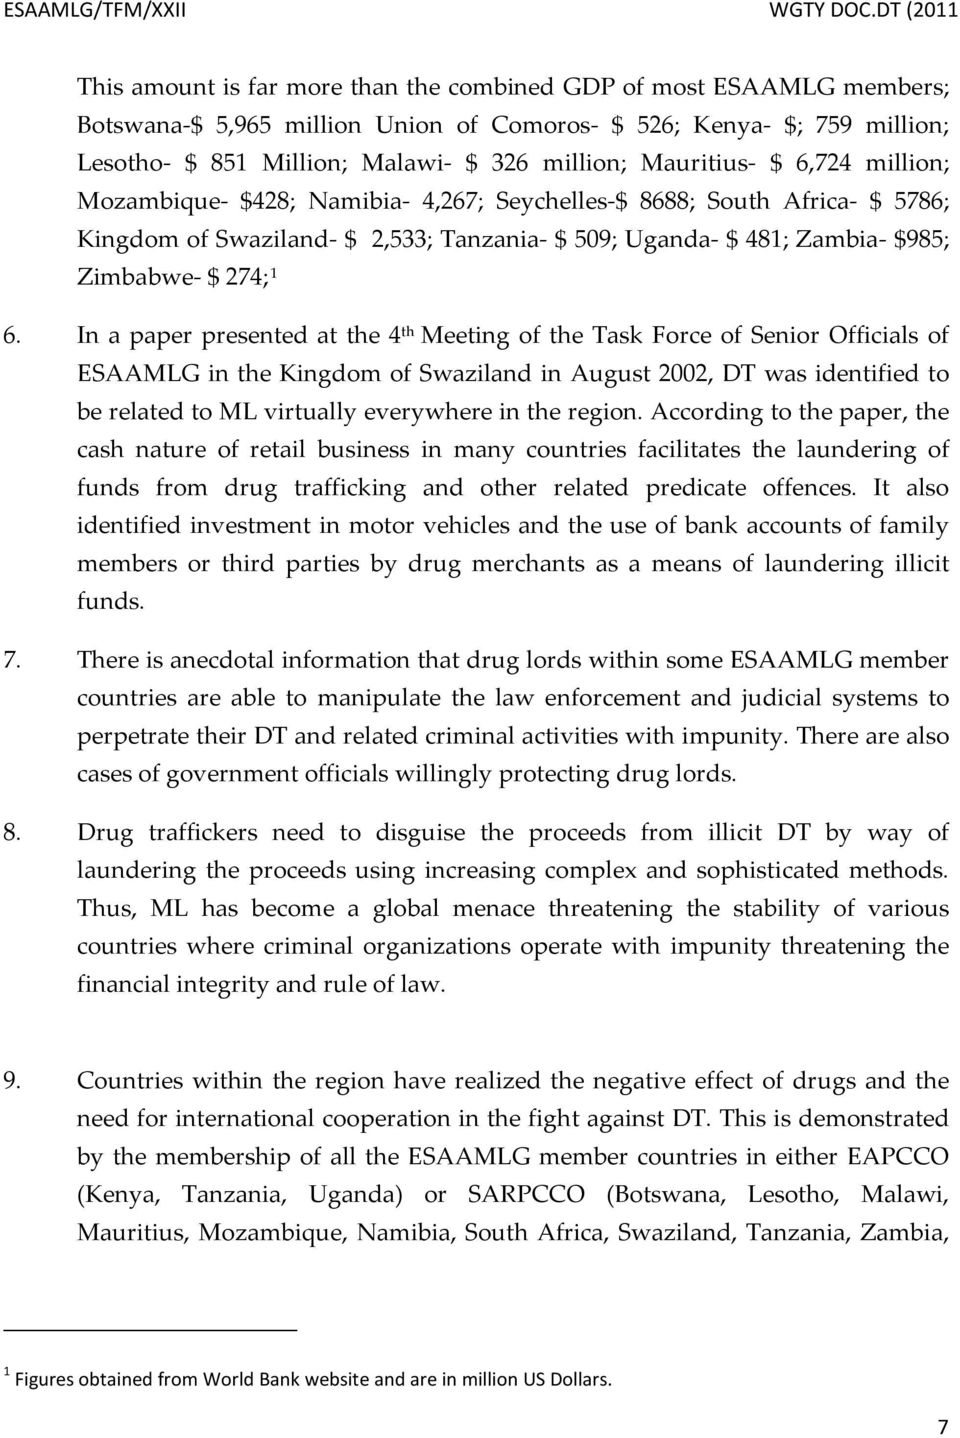 6. In a paper presented at the 4 th Meeting of the Task Force of Senior Officials of ESAAMLG in the Kingdom of Swaziland in August 2002, DT was identified to be related to ML virtually everywhere in